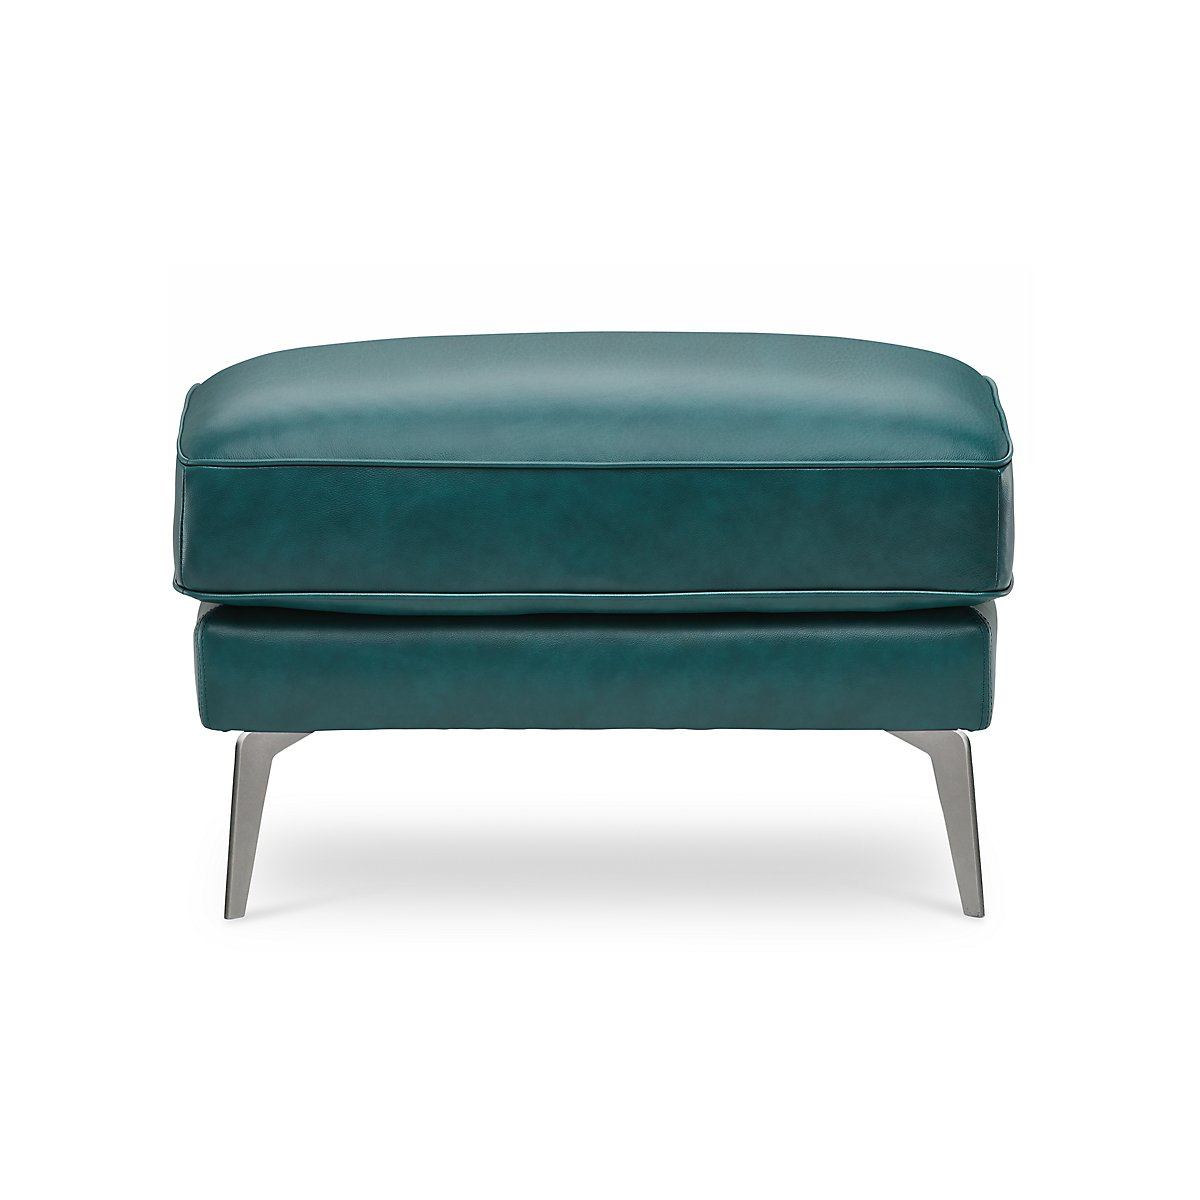 Naples Turquoise Leather Ottoman With Metal Legs